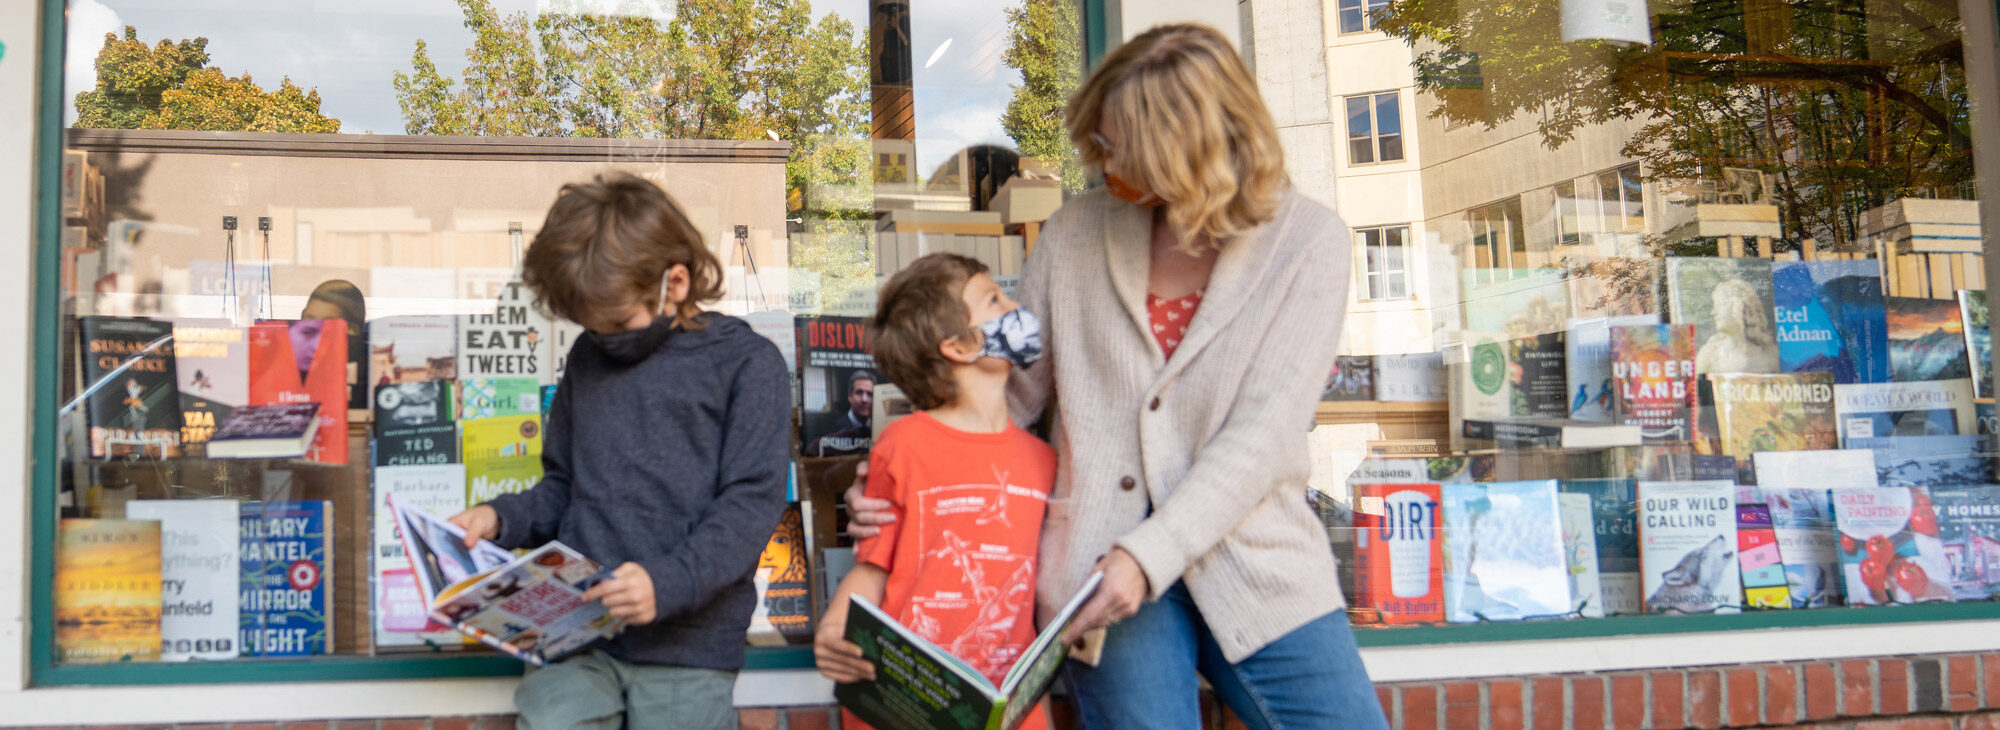 Parent and two children enjoying books outside bookstore.